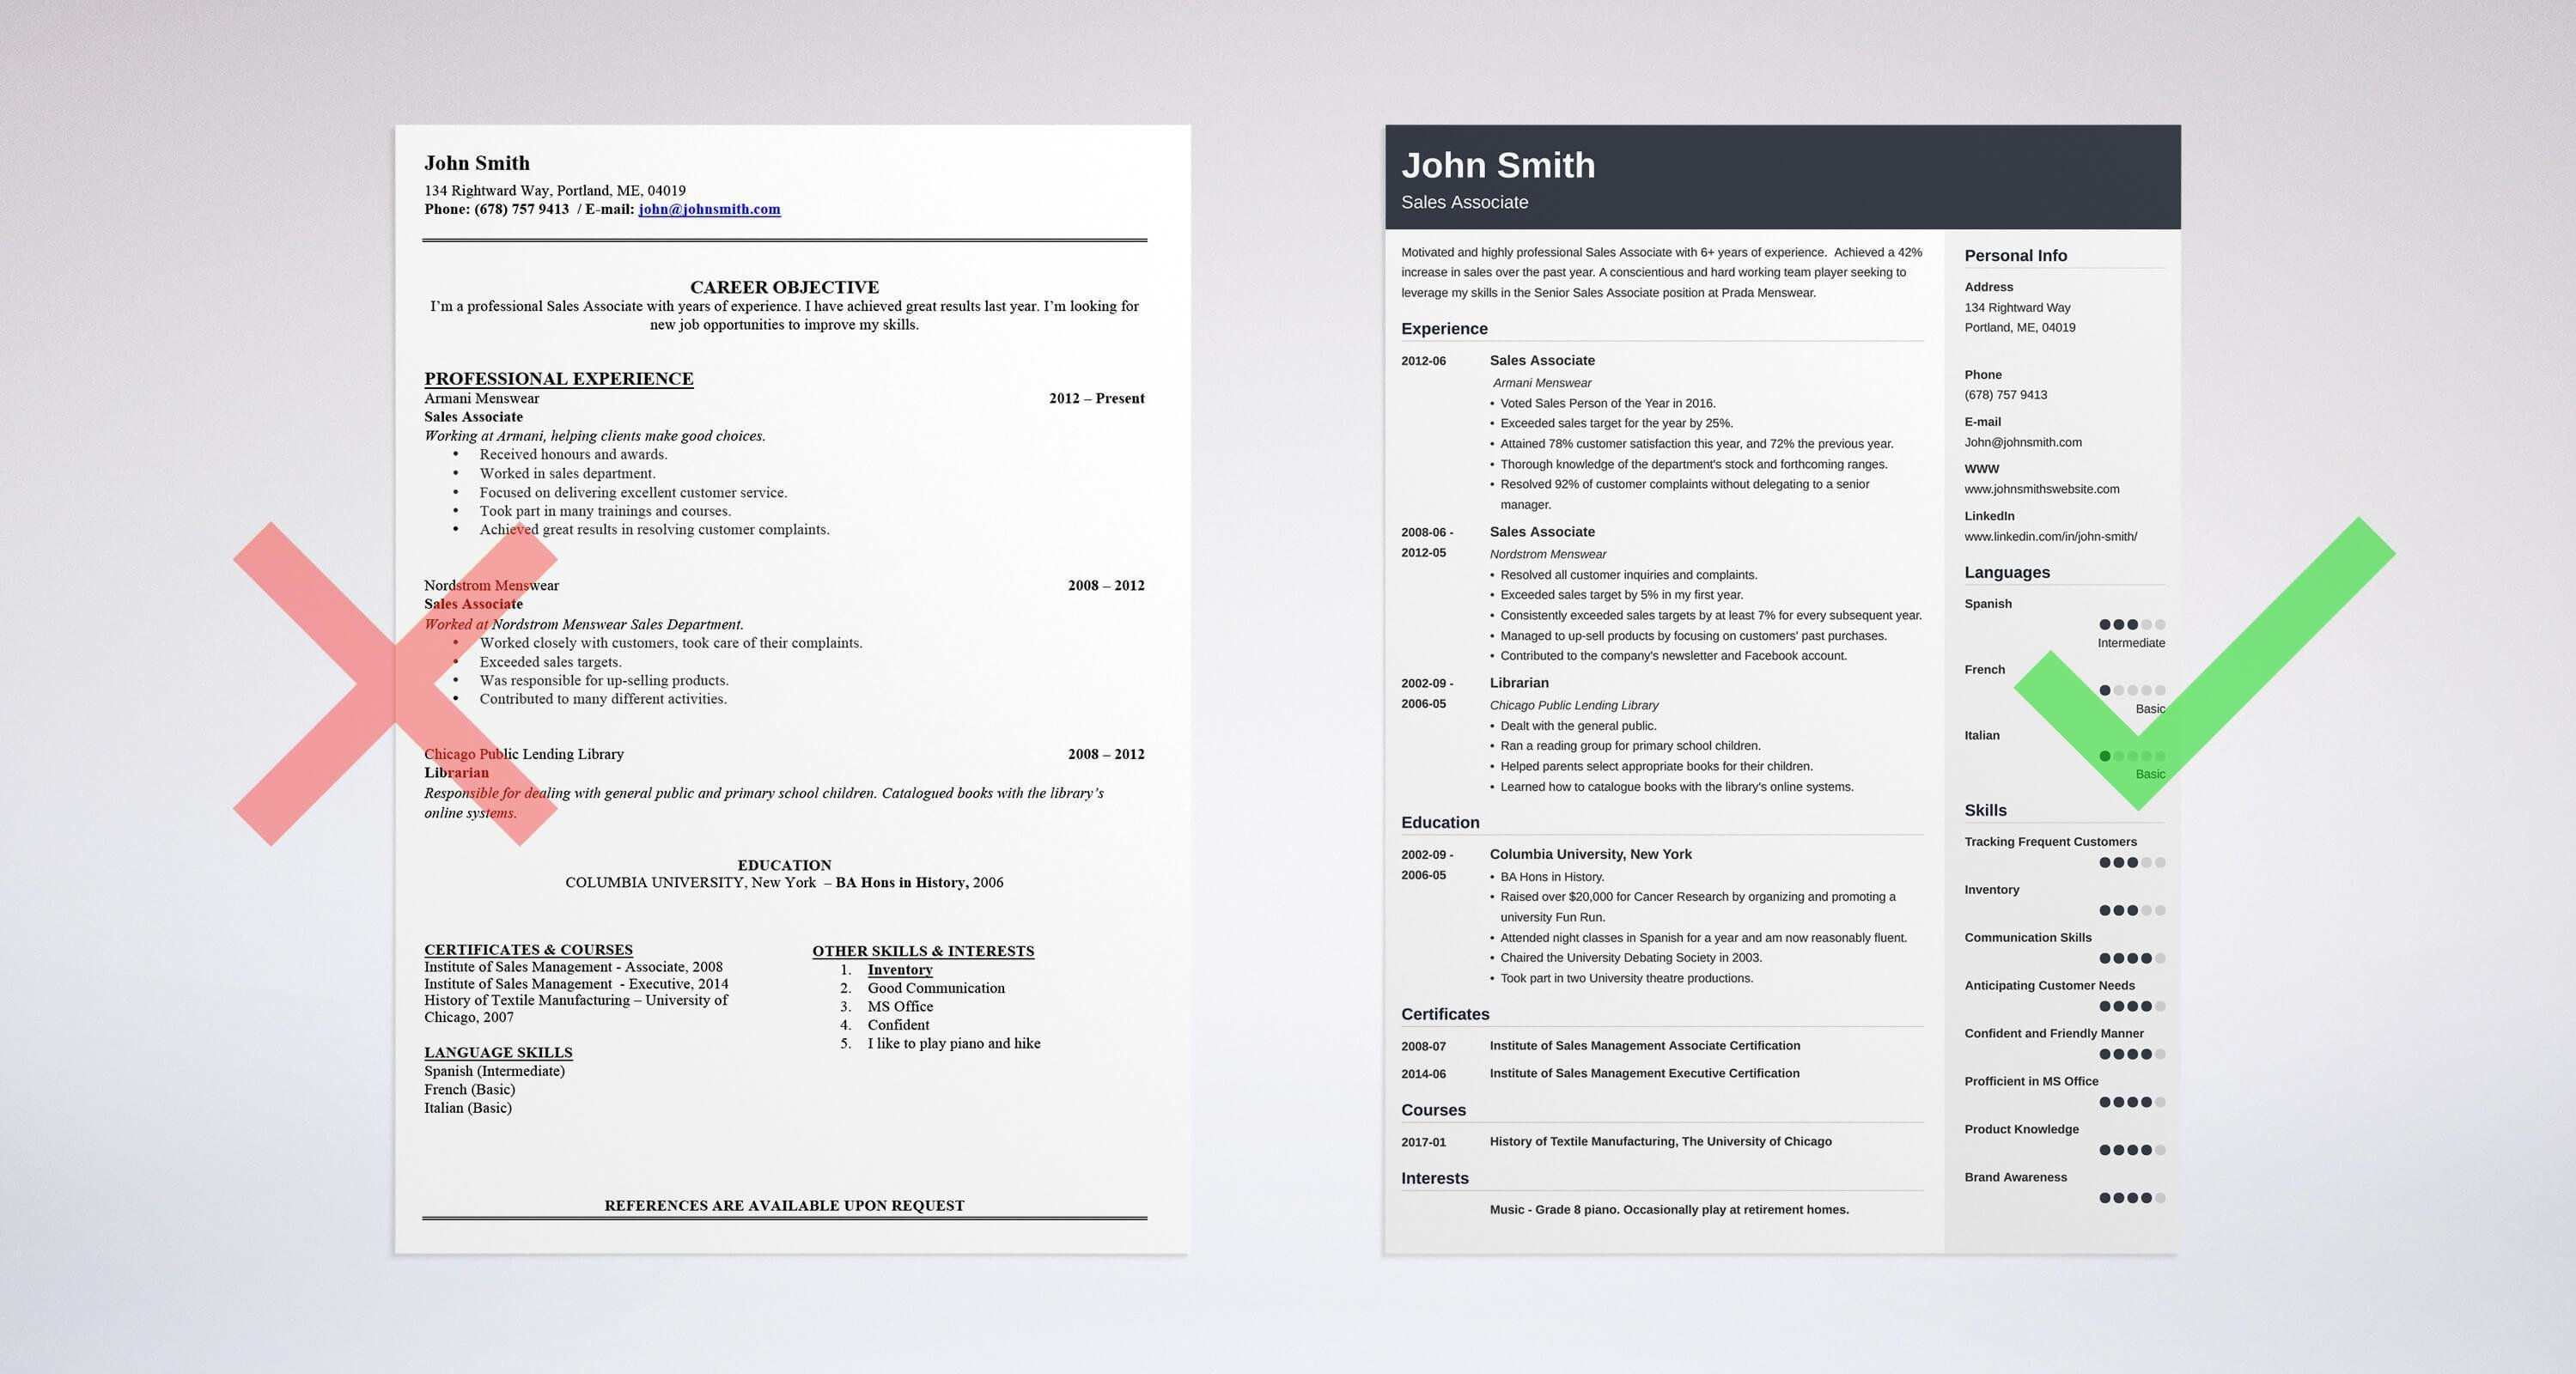 My Cv Resume Resume Summary Examples 30 Professional Summary Statements